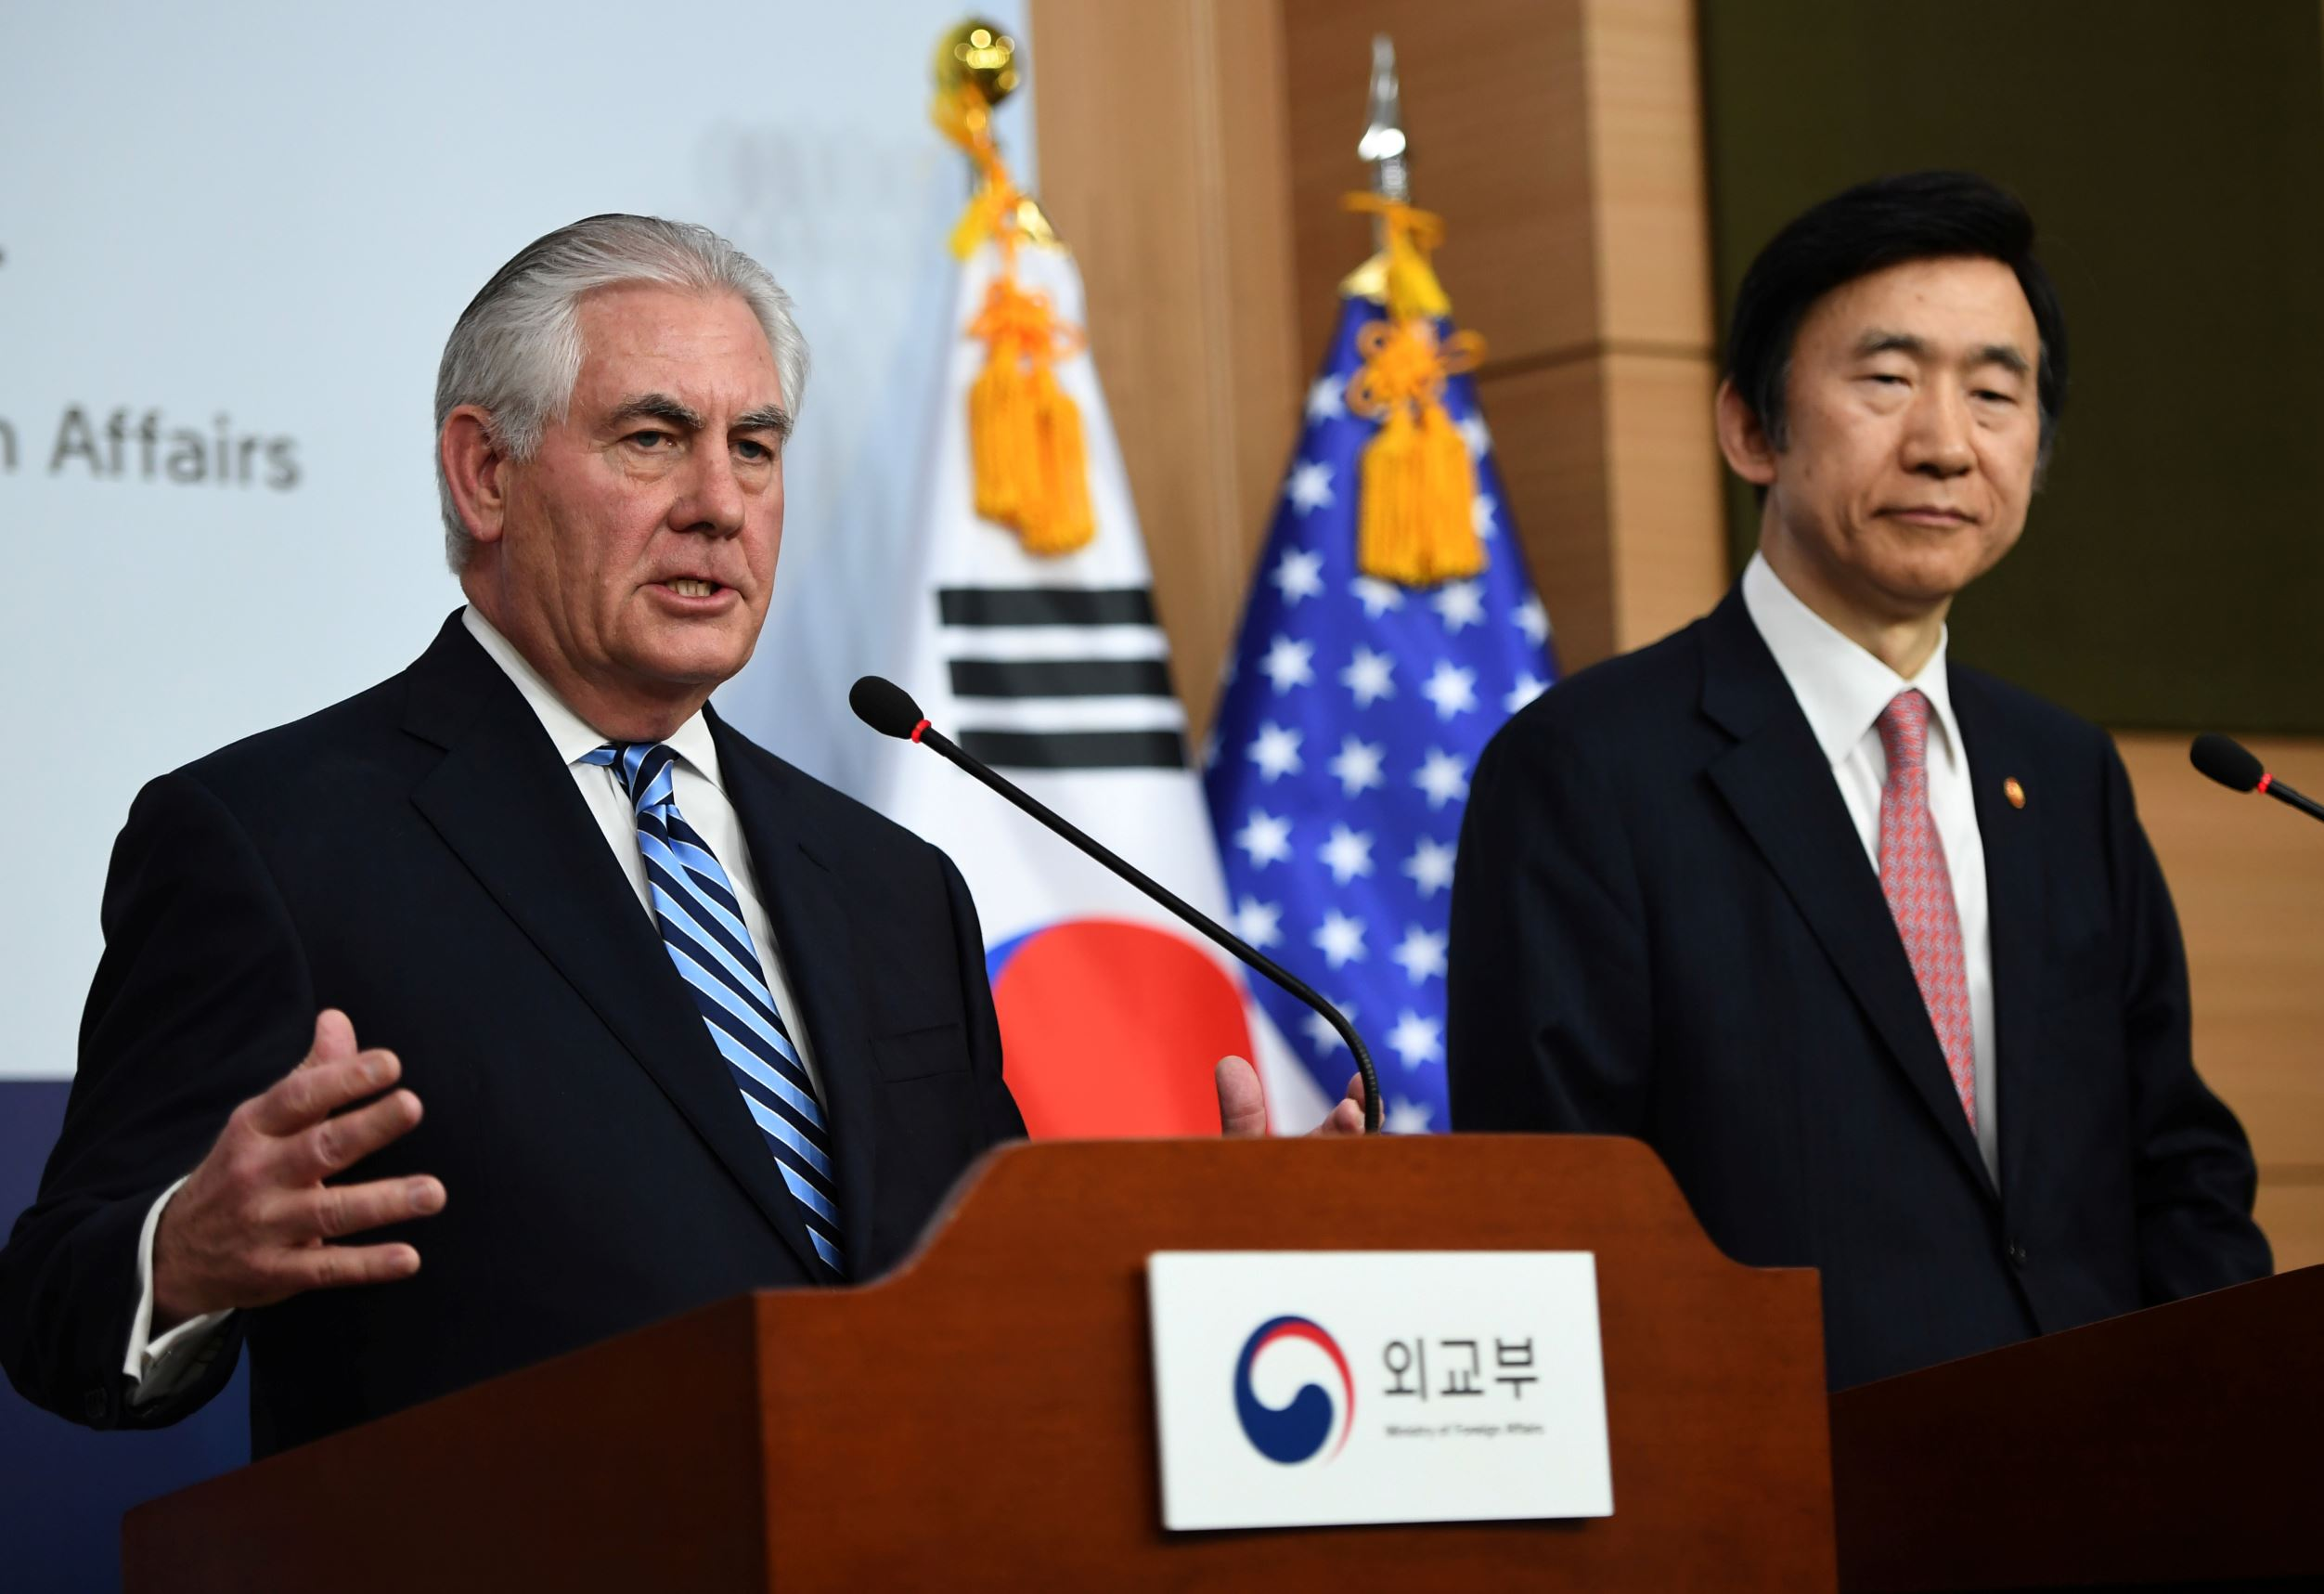 U.S. Secretary of State Rex Tillerson speaks as South Korean Foreign Minister Yun Byung-Se looks on during a news conference in Seoul.